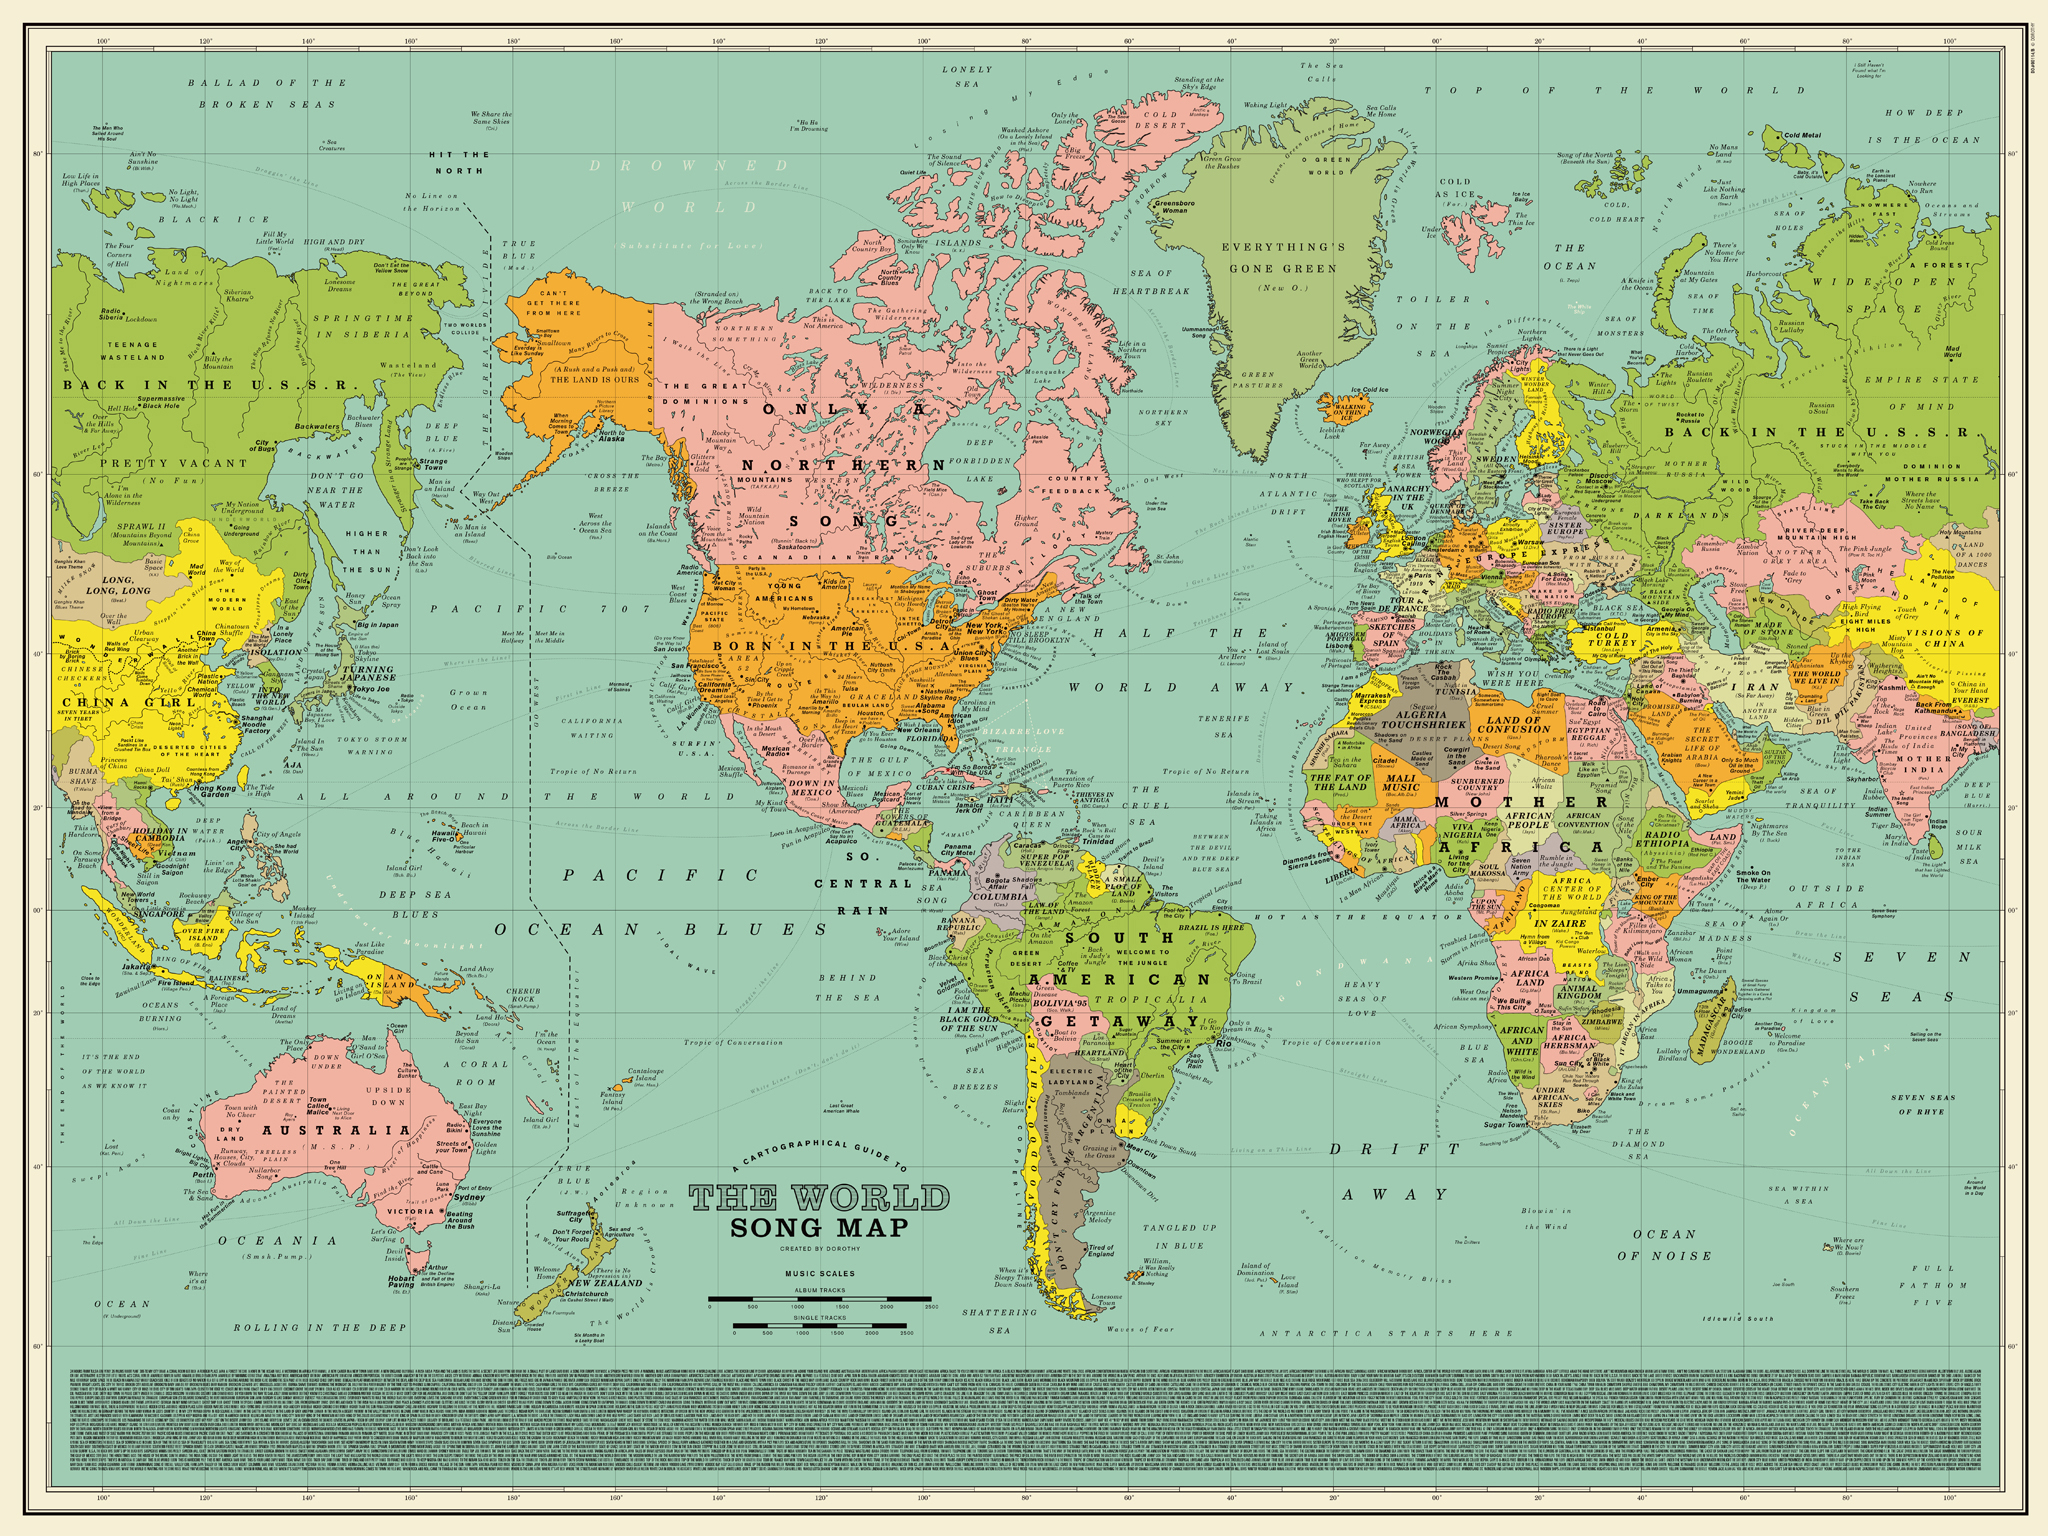 World Song Map A Detailed Poster That Imagines The World Map Made - Mapofworld